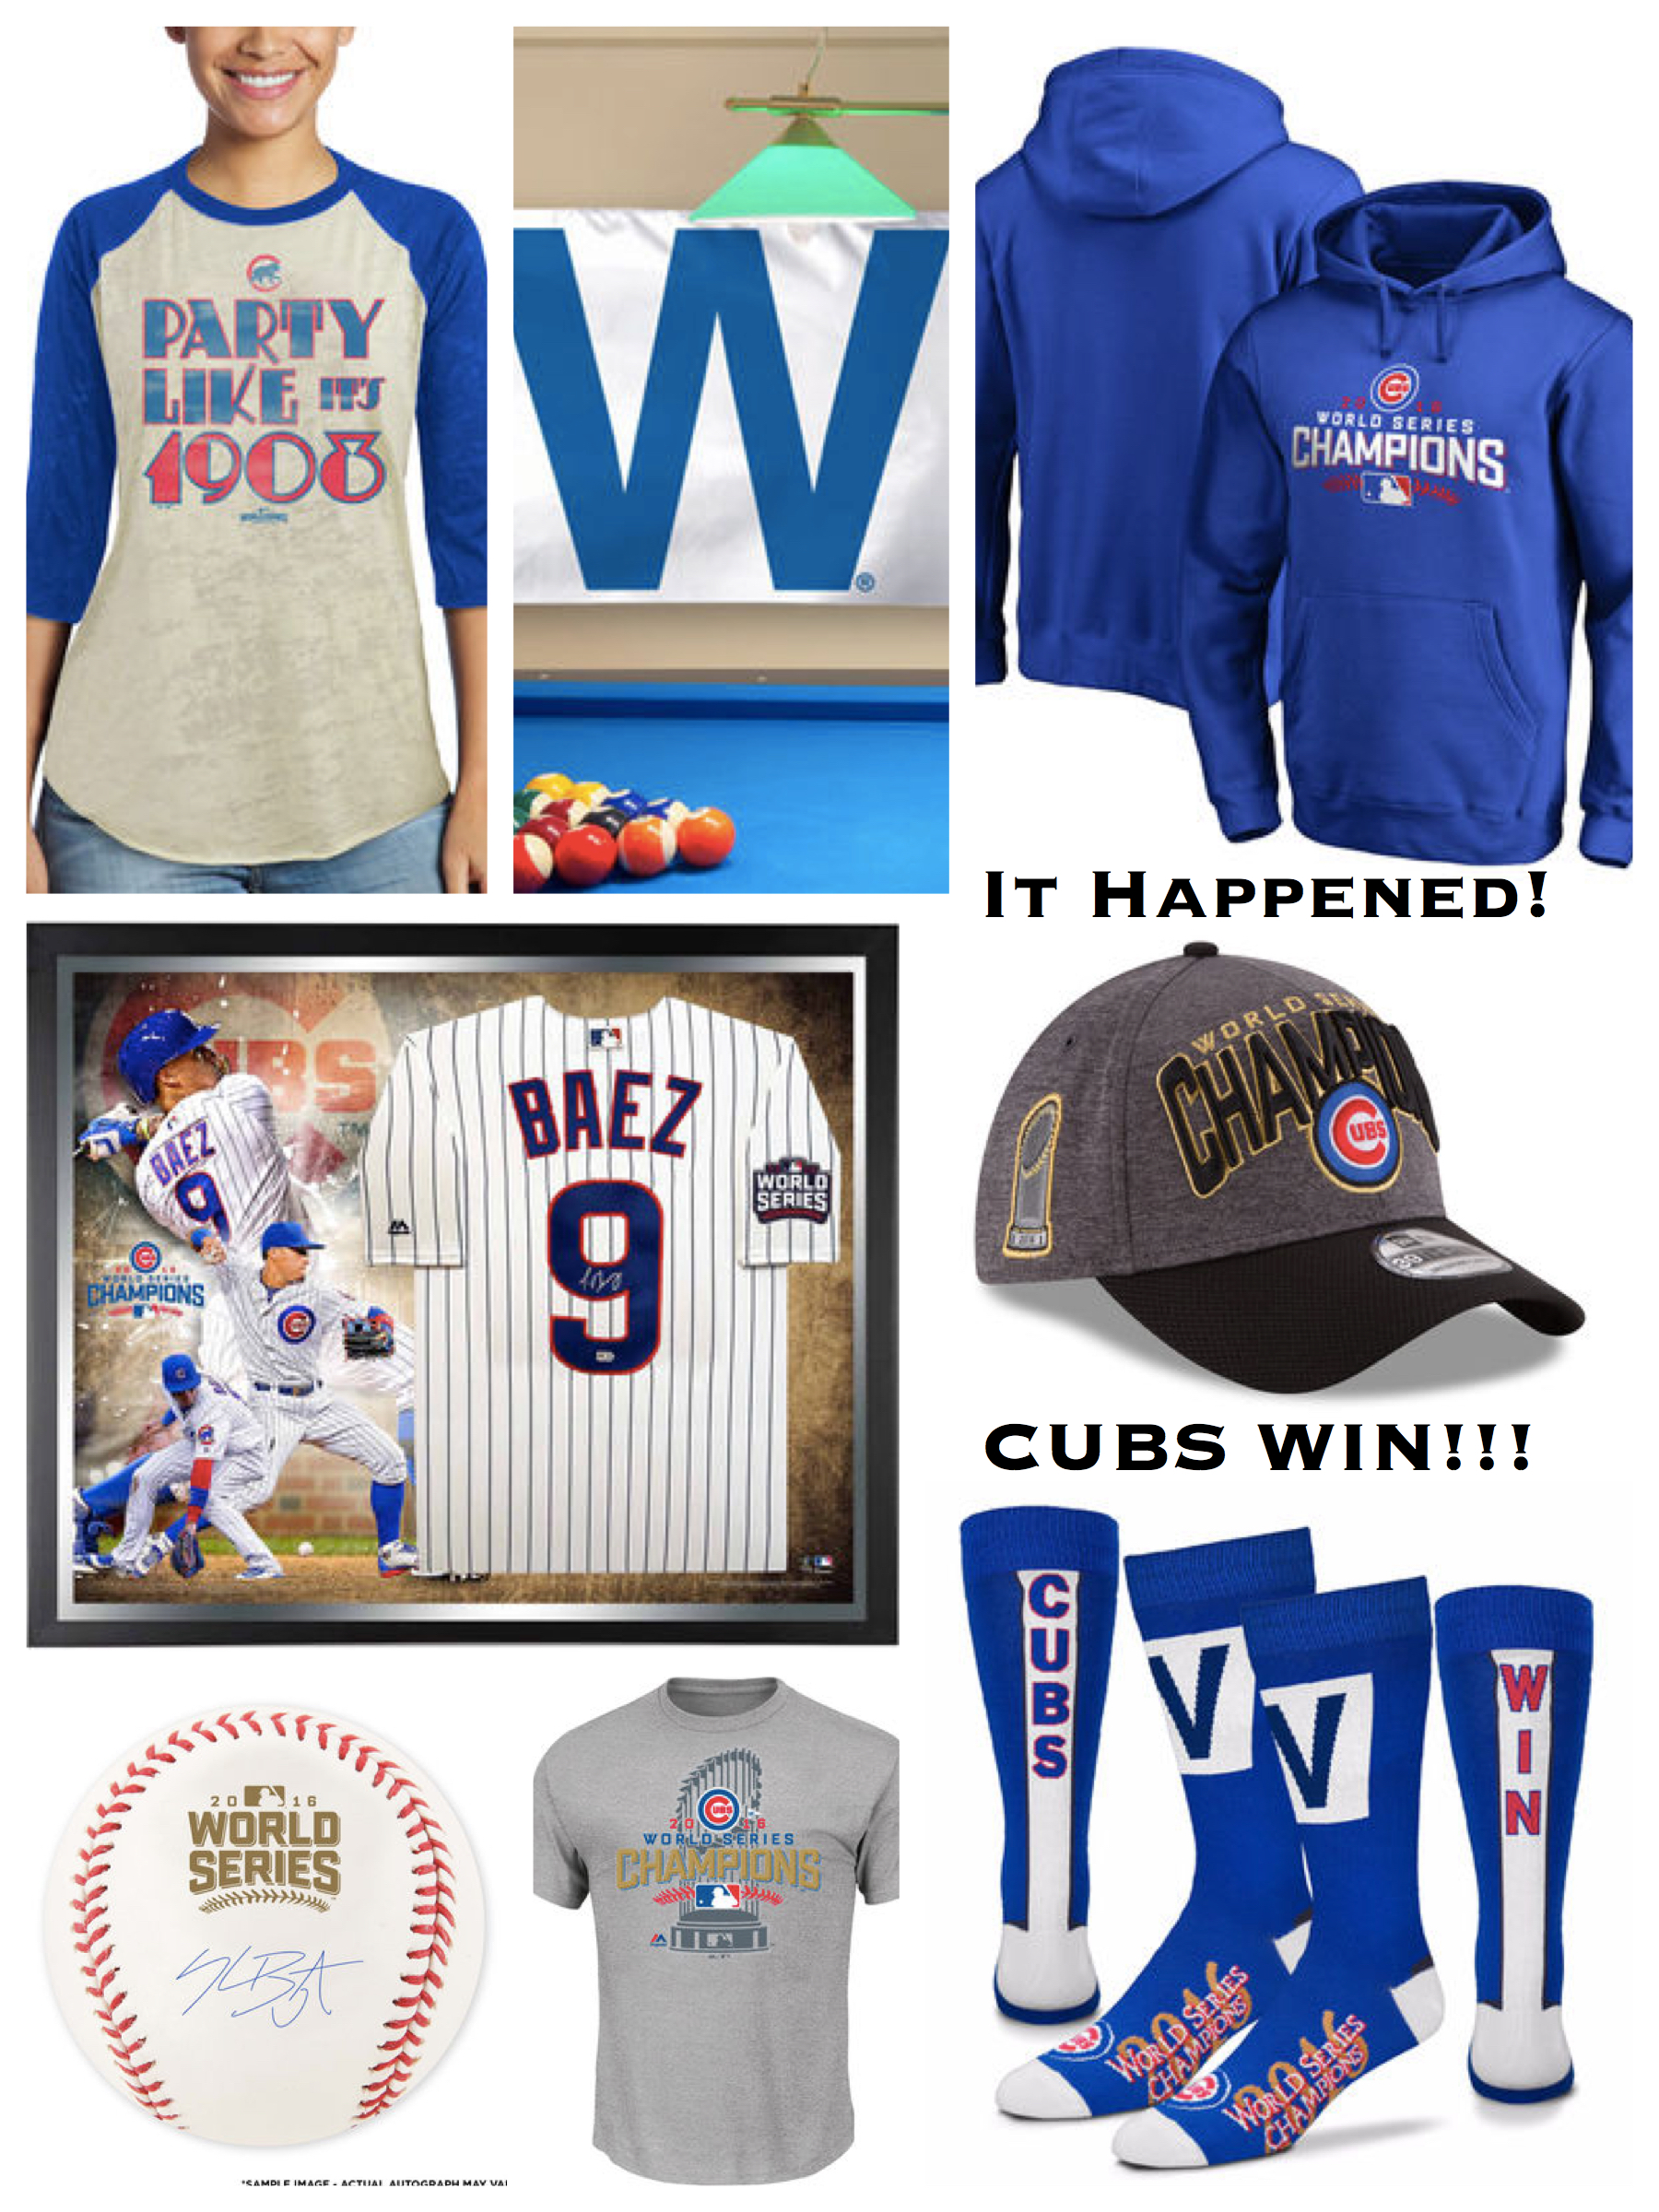 It Happened - Cubs Win!